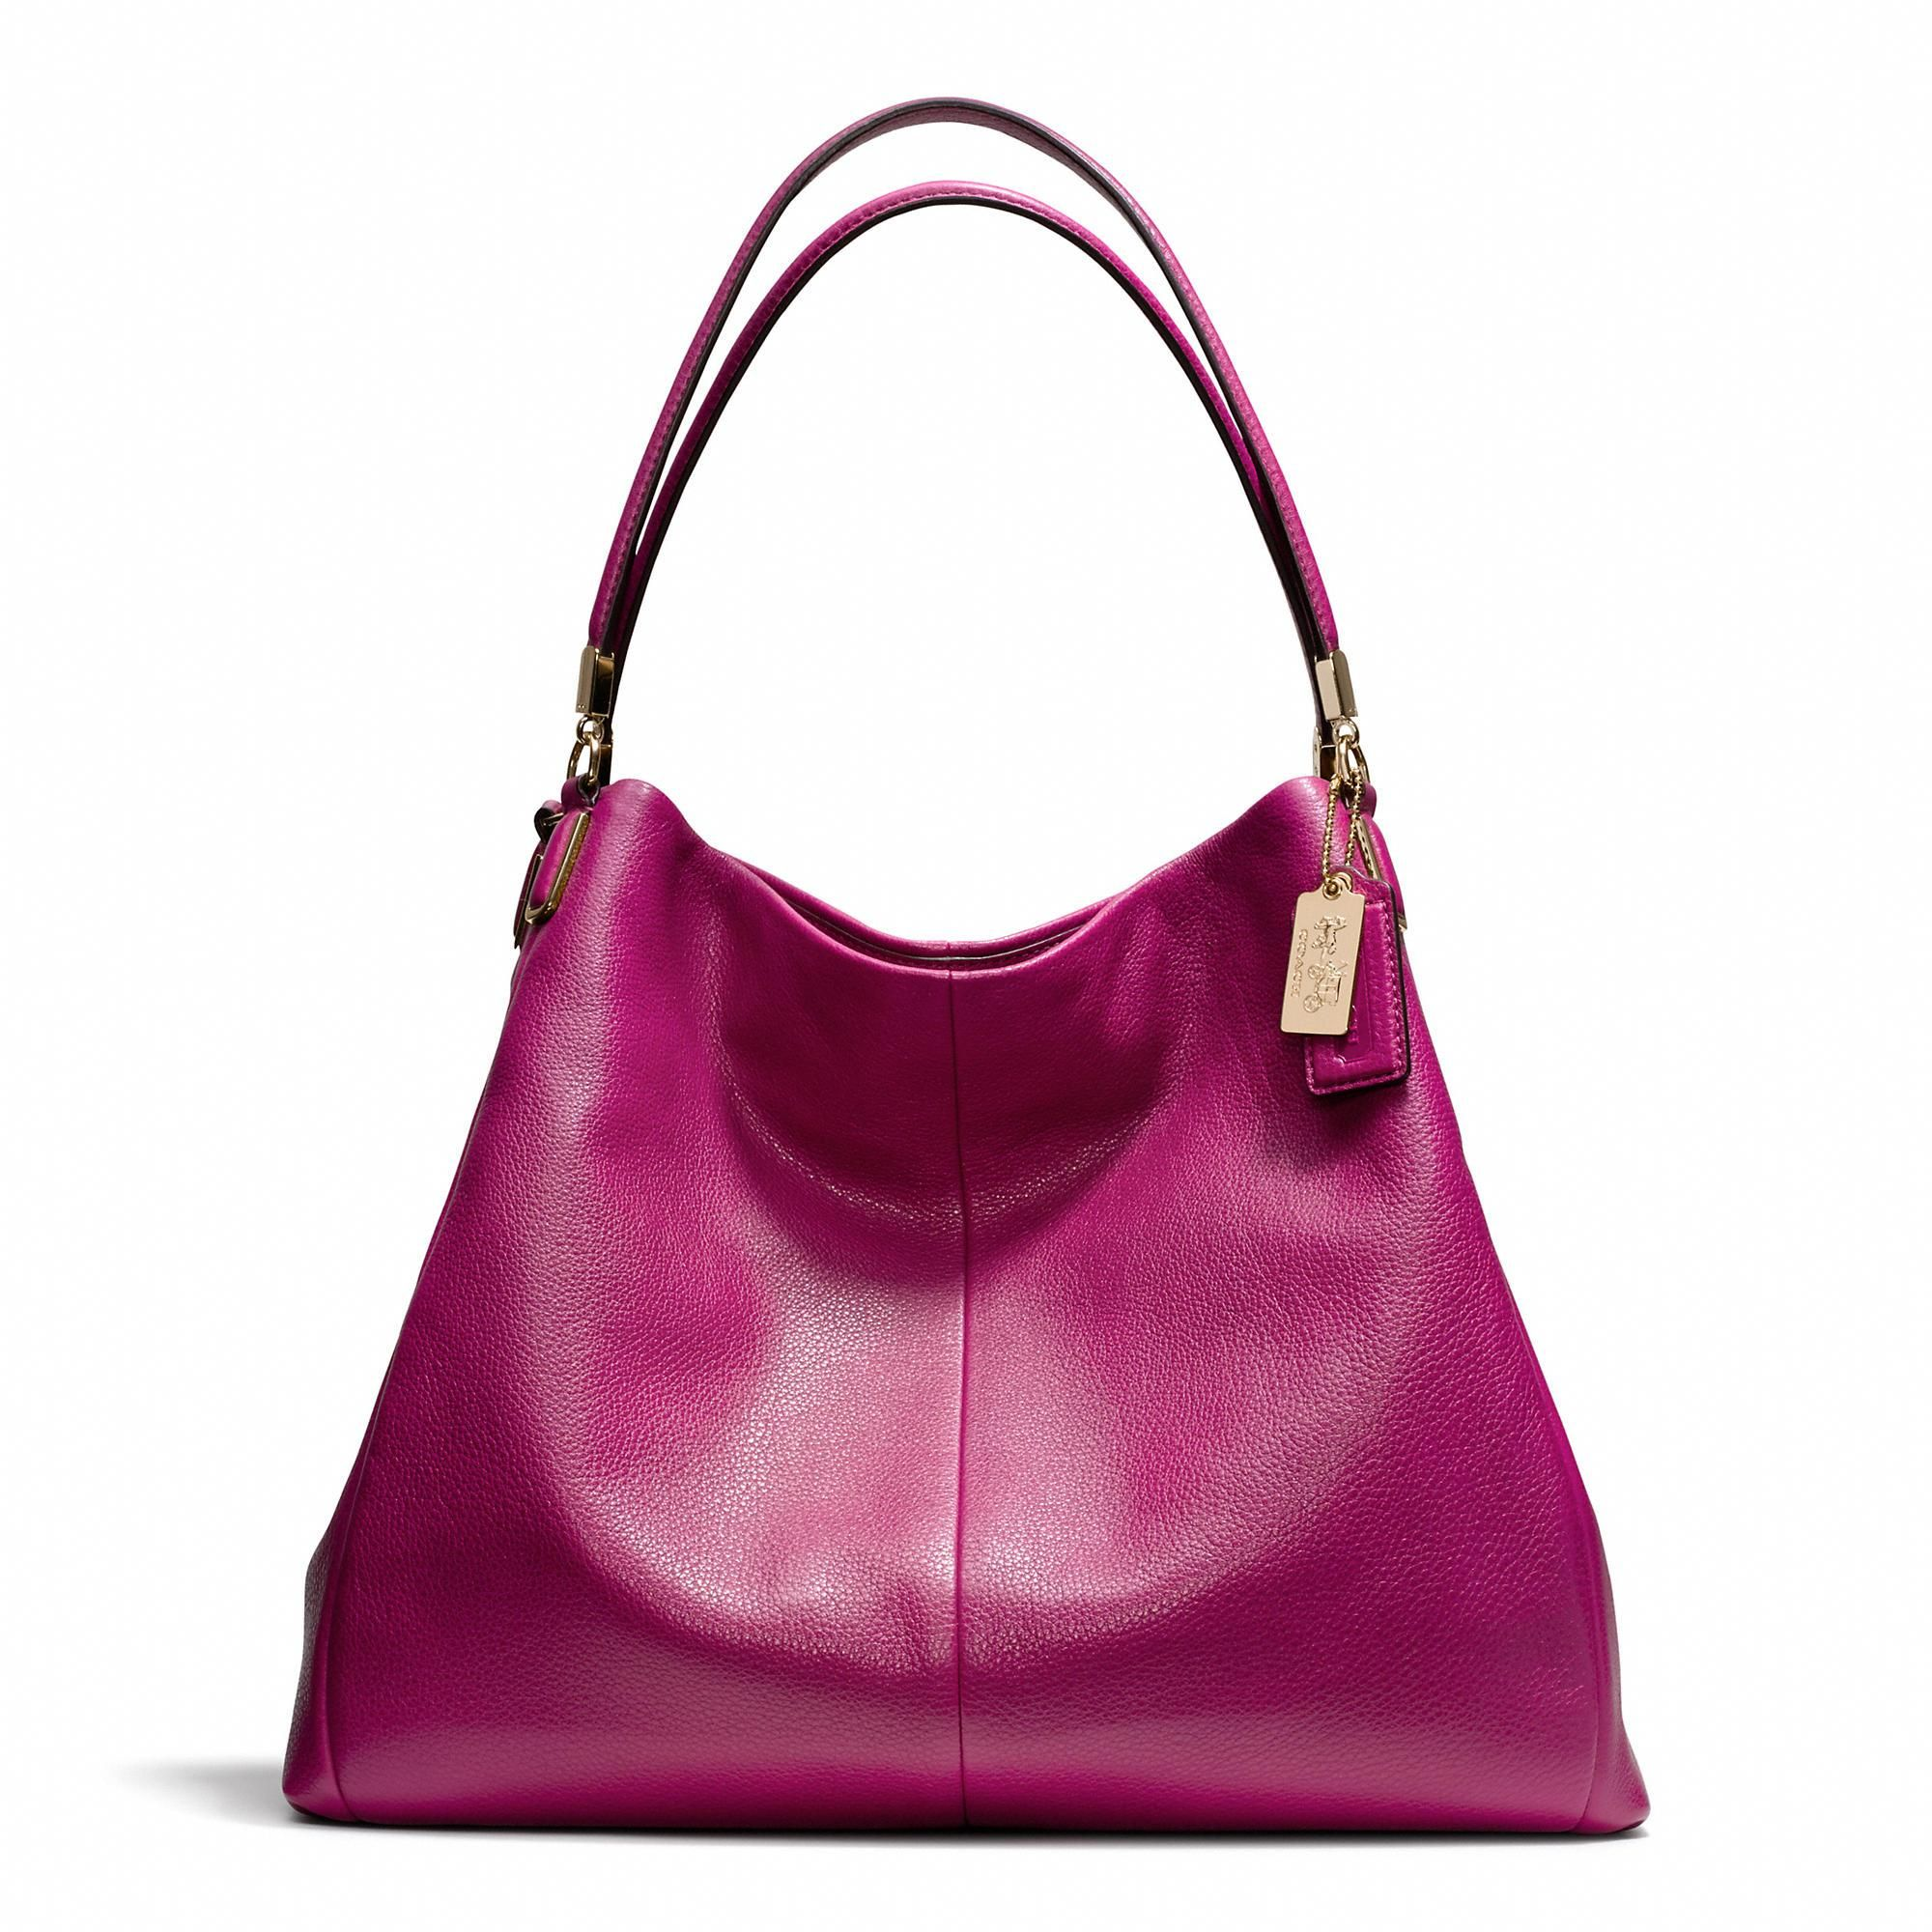 The Madison Phoebe Shoulder Bag In Leather From Coach This With A Manicure To Match Love